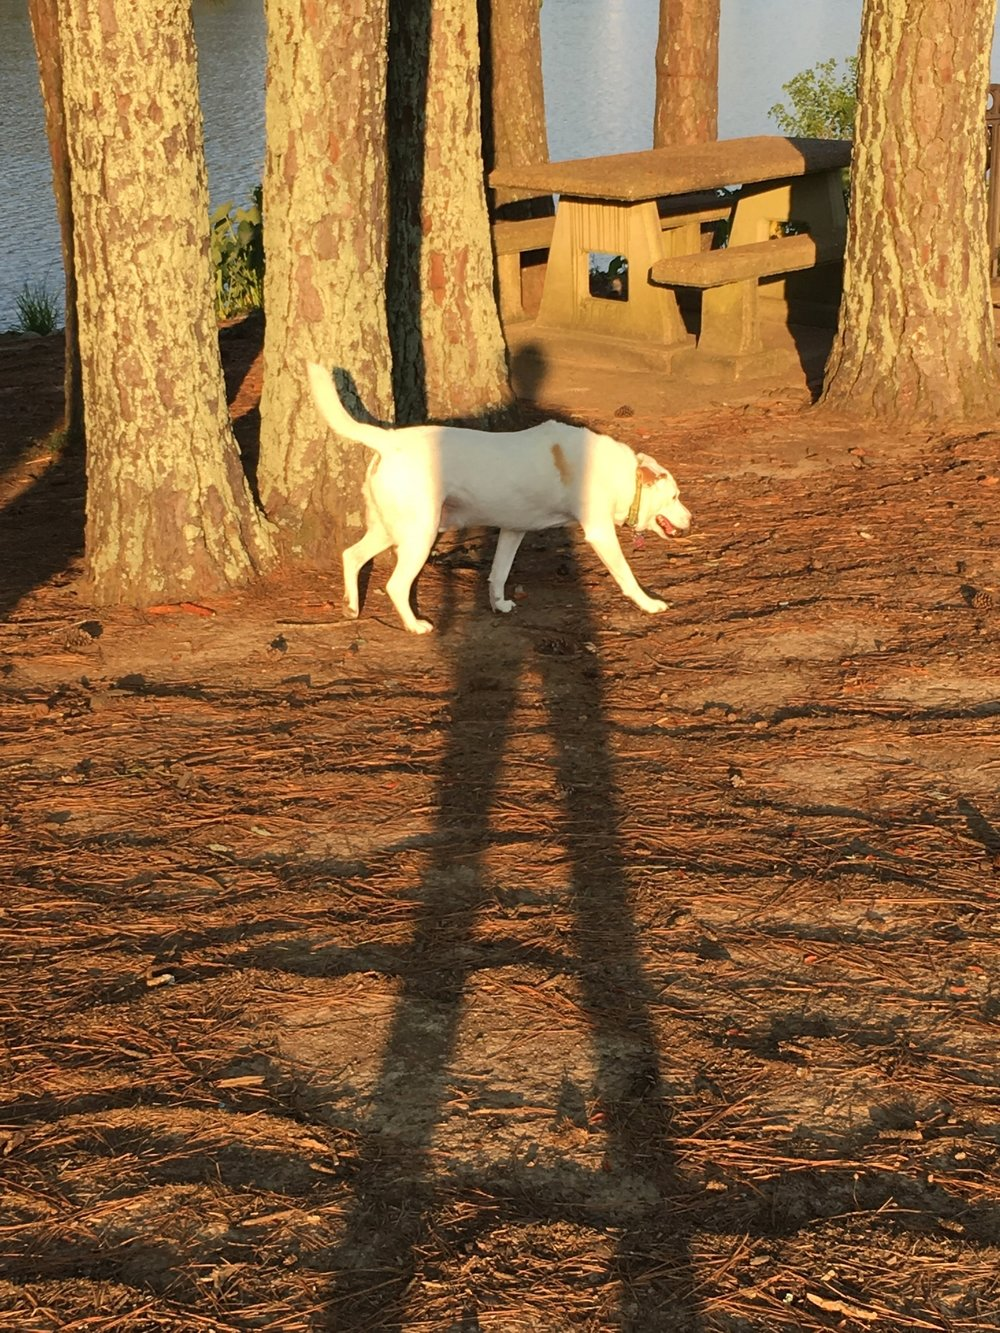 Morning 2 - 1. Go off leash.2. Choose your path.3. When you pass through the shadows, do not fear. It's probably just your pet parent photographing you.